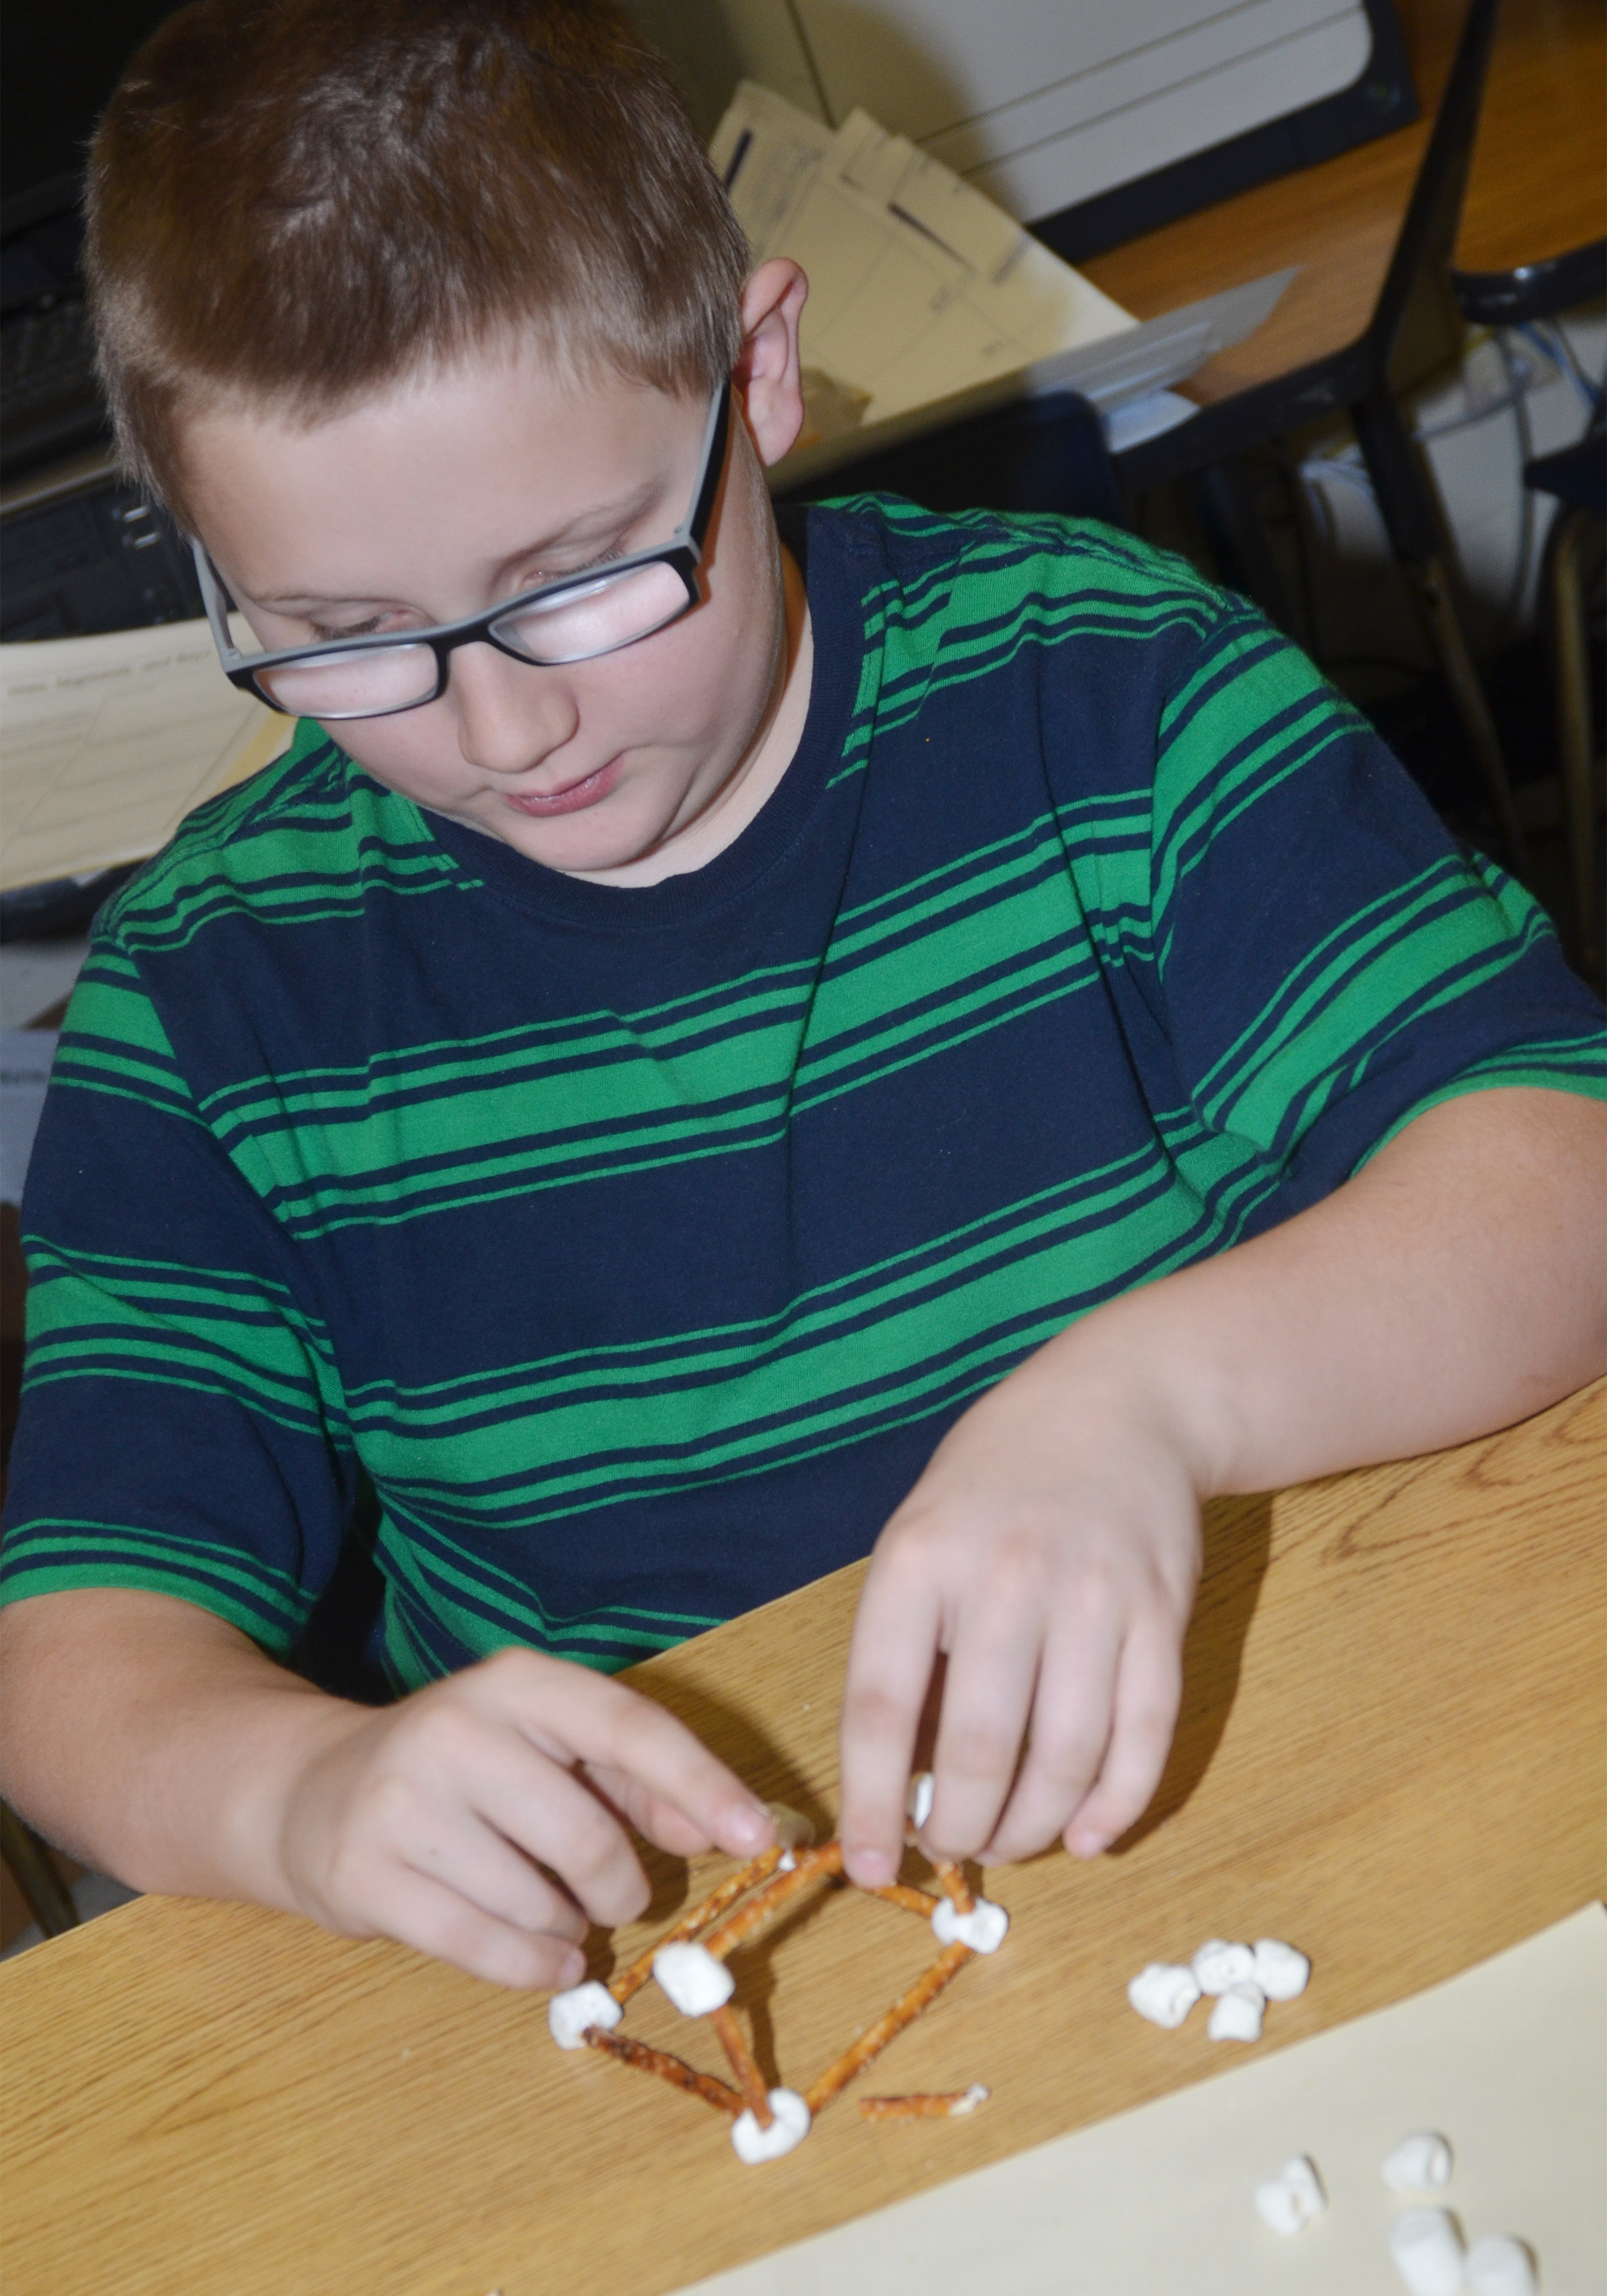 CMS fourth-grader Landon Rakes makes a geometric shape out of marshmallows and pretzels.